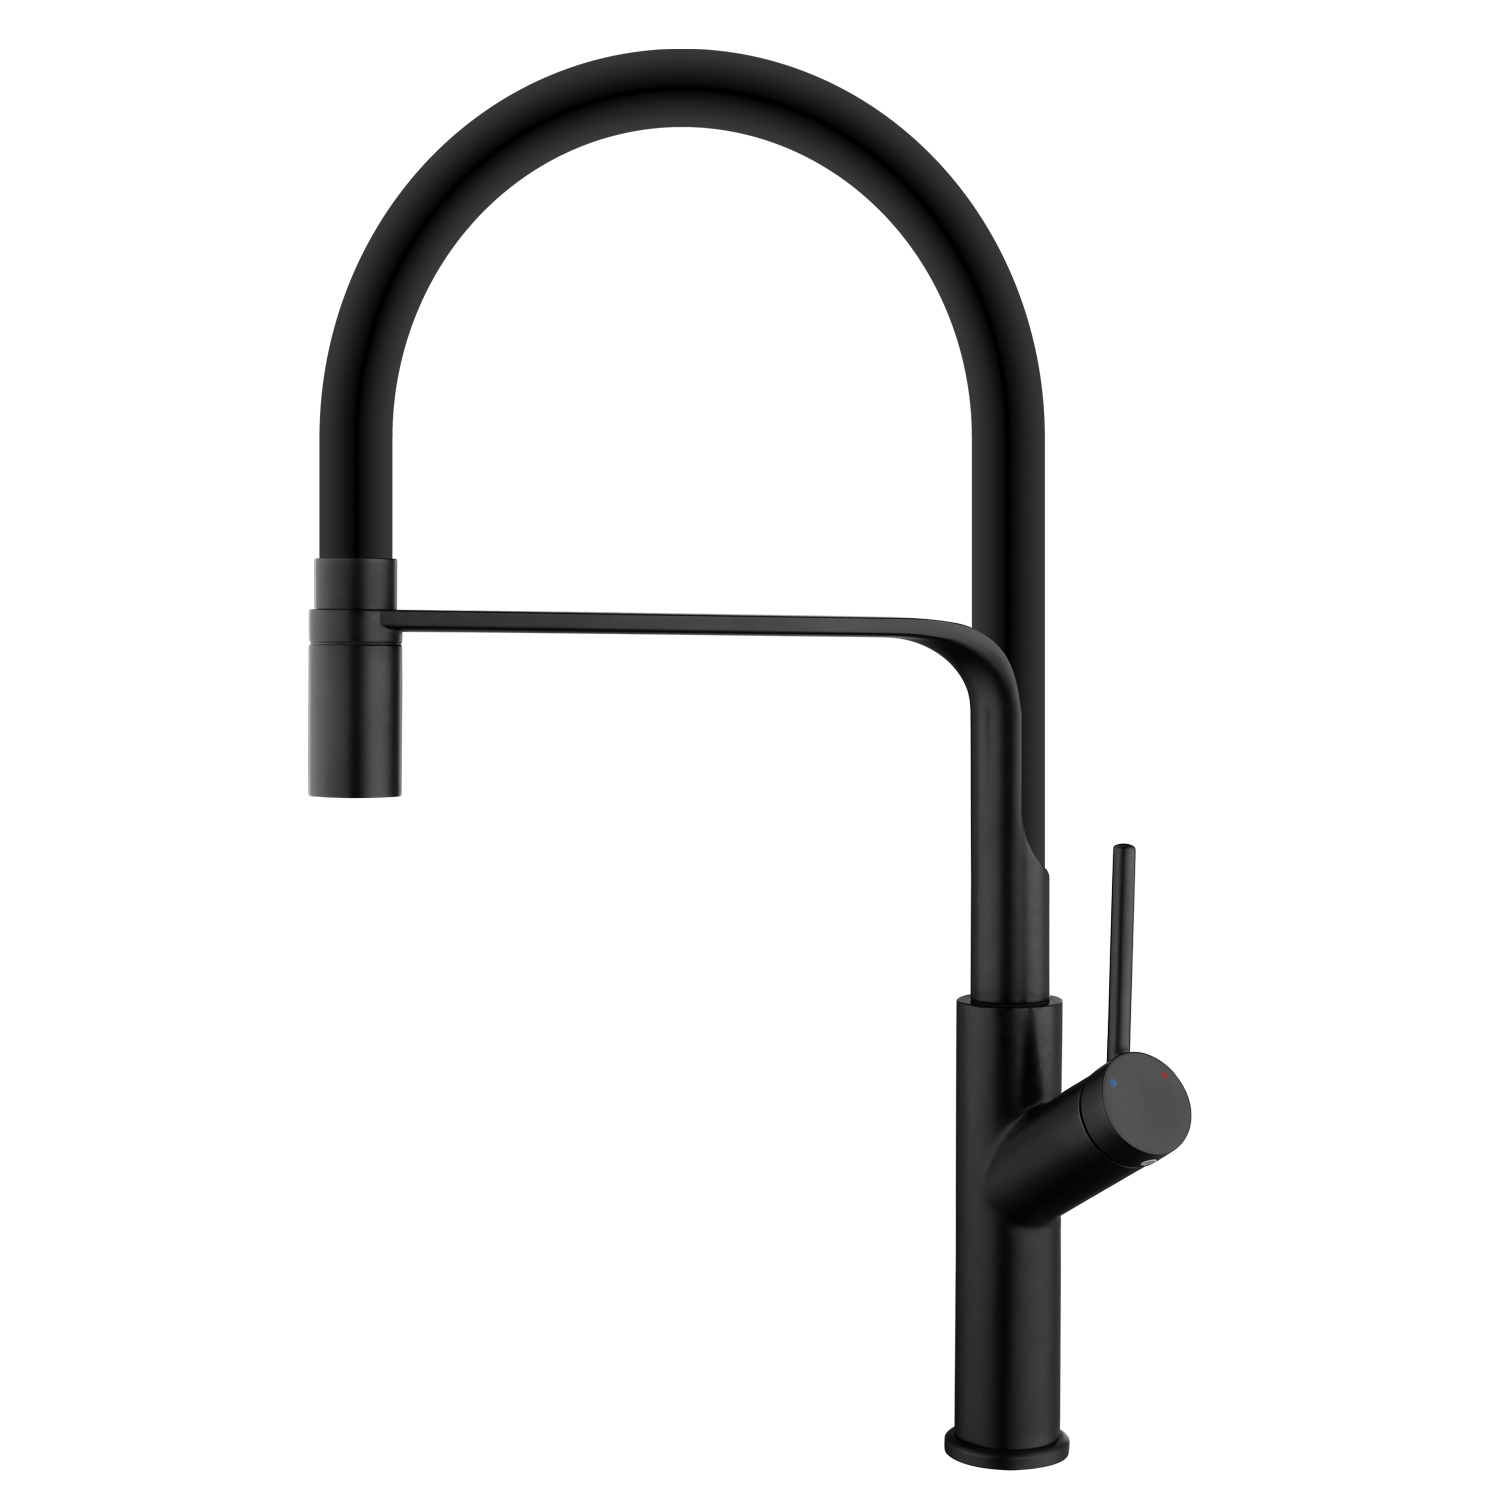 Kitchen Faucet Silicone Hose High Arc Bathroom Basin Faucet Sink Faucets Ceramic Valve 360 Degree Swivel Kitchen Mixer Water Tap